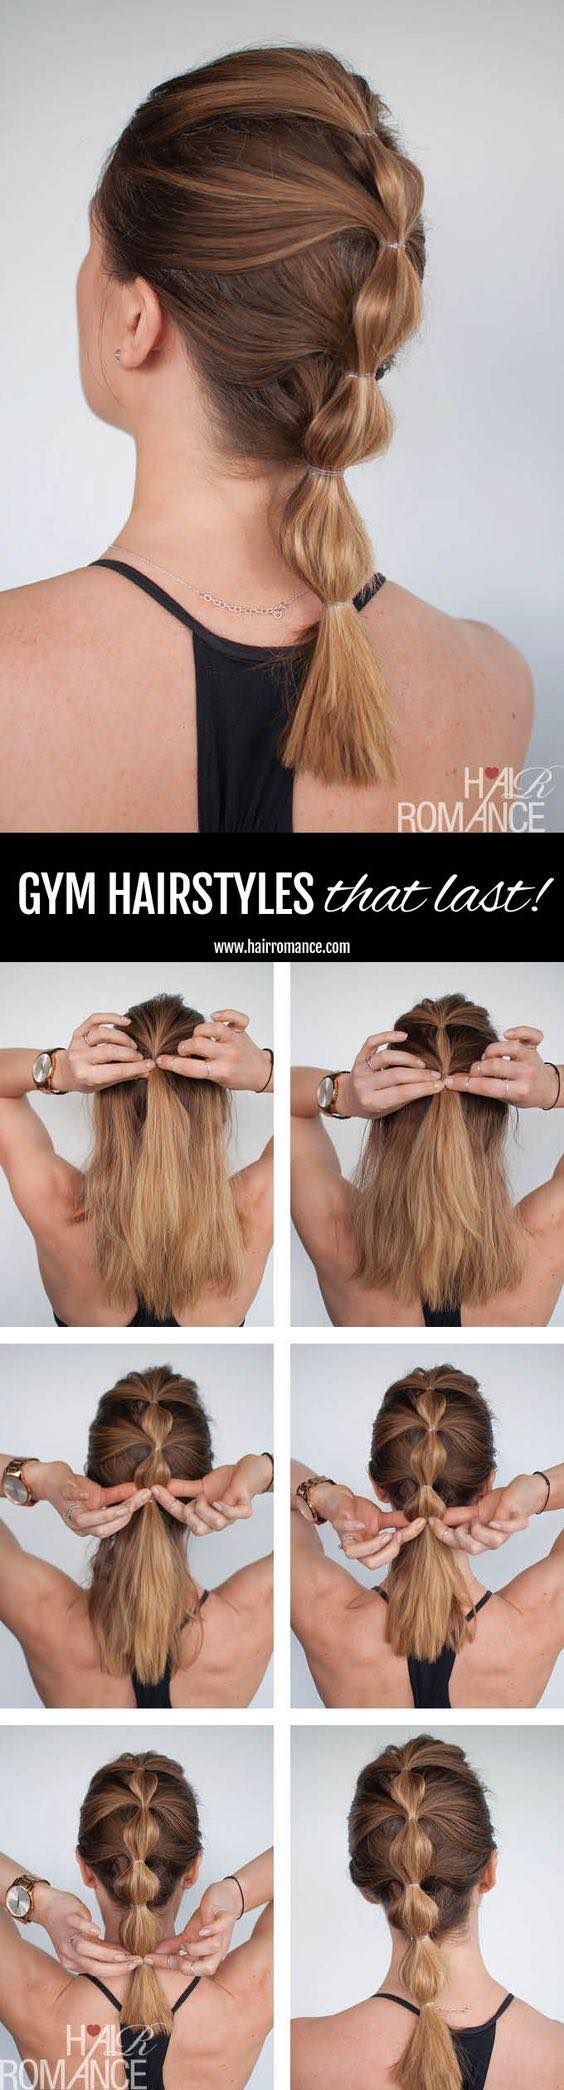 Hair Romance: Gym hairstyles — bubbly ponytail hairstyle tutorial